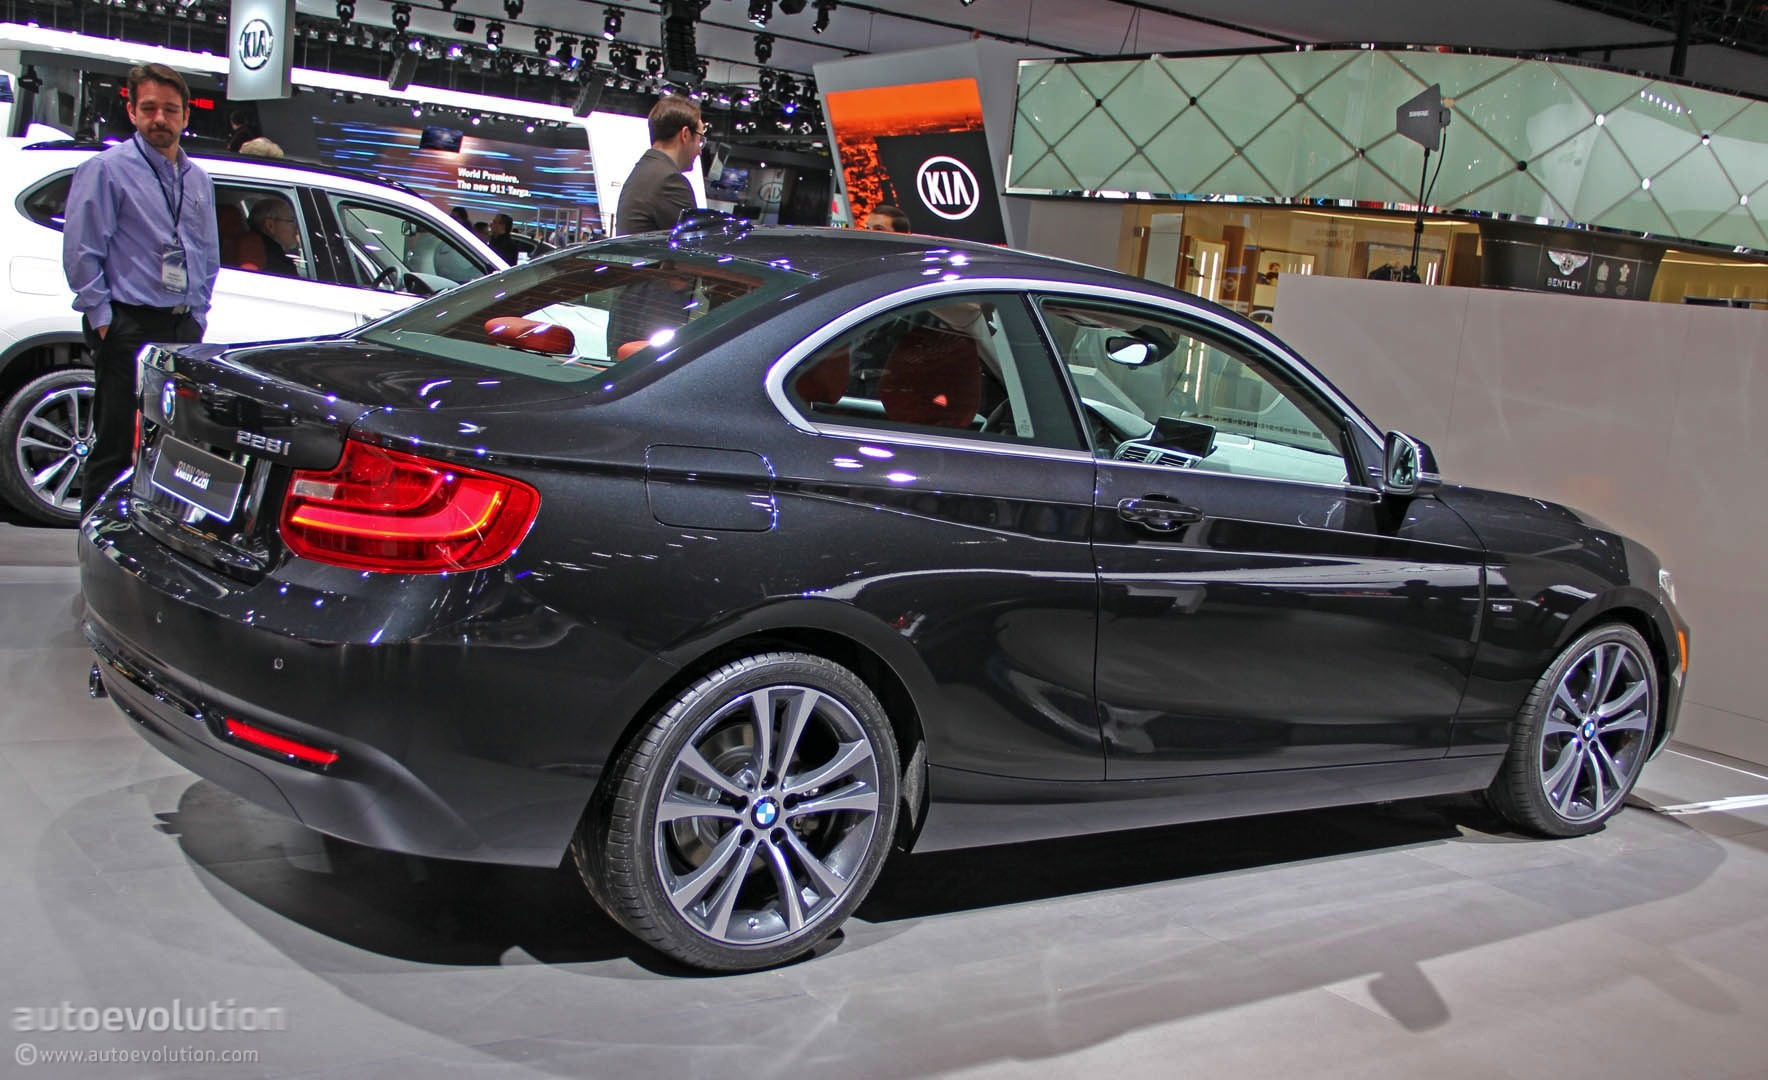 New 2 Series Coupe Is A True Bmw In Detroit Live Photos Autoevolution